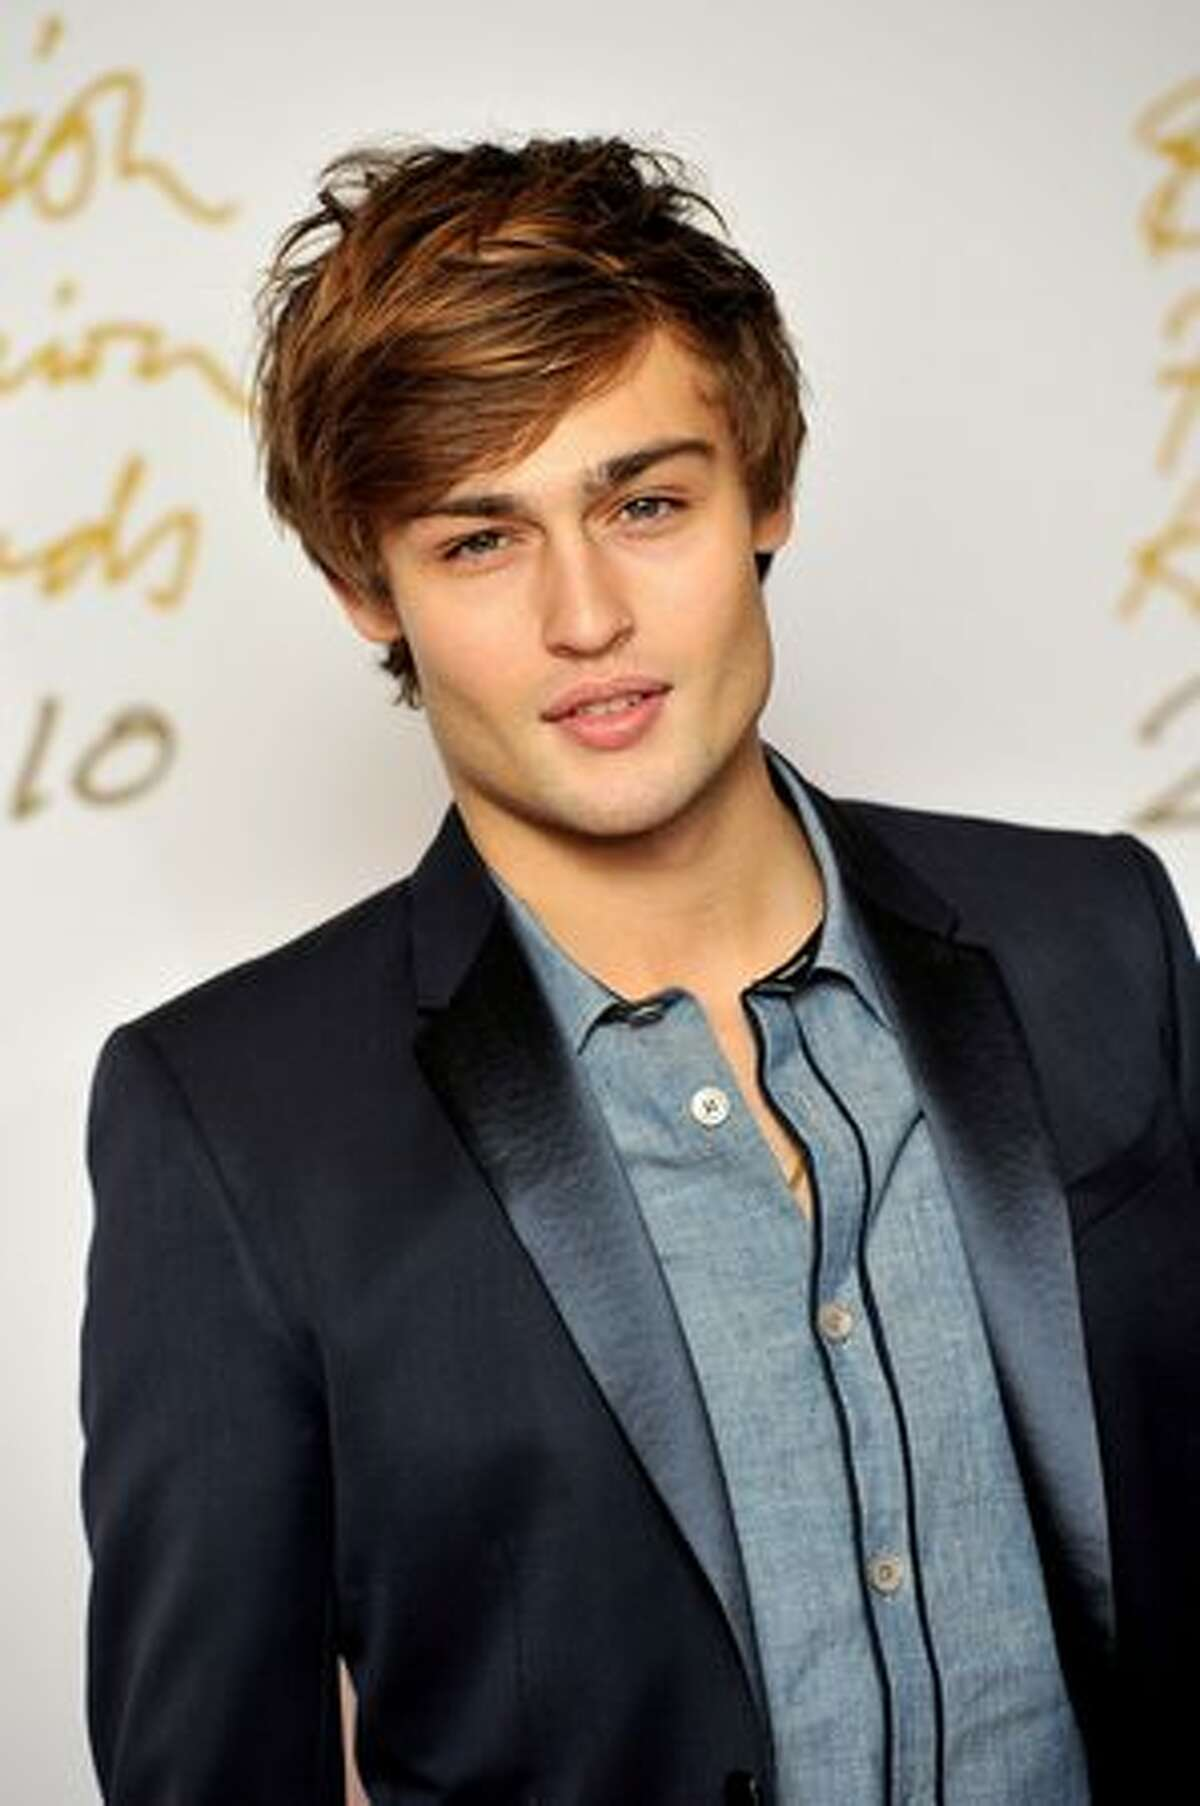 Model Douglas Booth attends the British Fashion Awards at The Savoy in London, England.